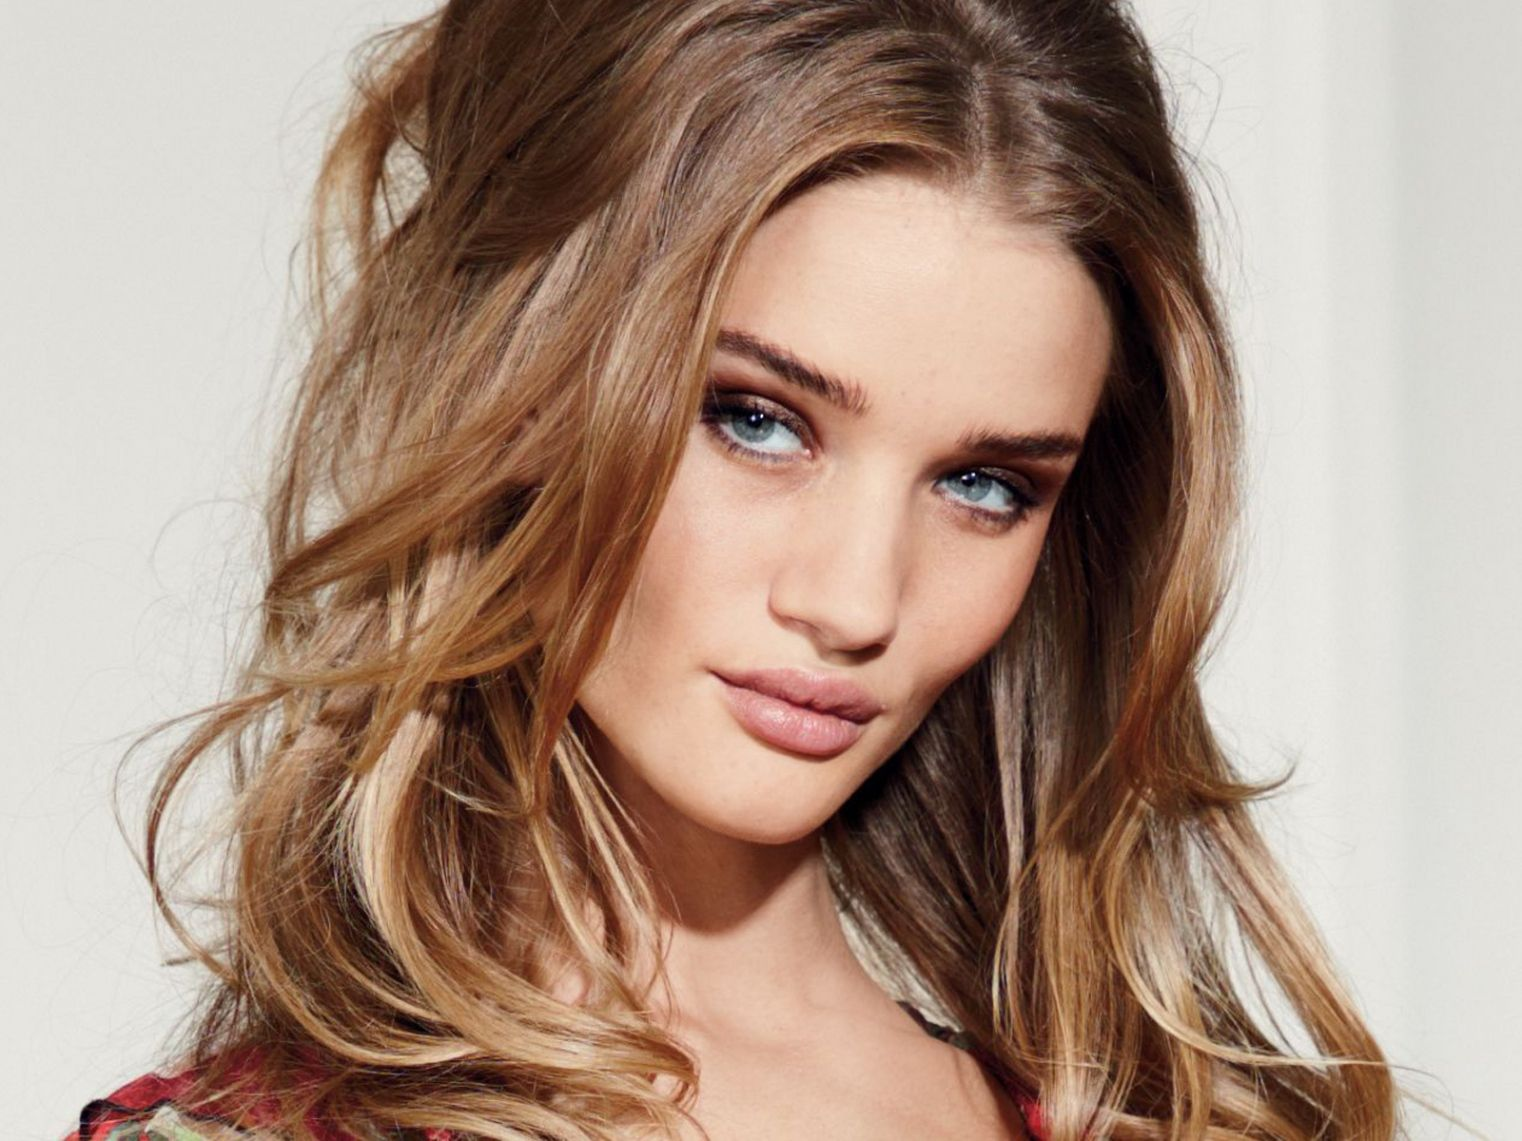 Caramel Hair Color Ideas Best Hair Color For Brown Green Eyes Check More At Http Www Fitnurset Hair Pale Skin Hair Colour For Green Eyes Hair Color Caramel